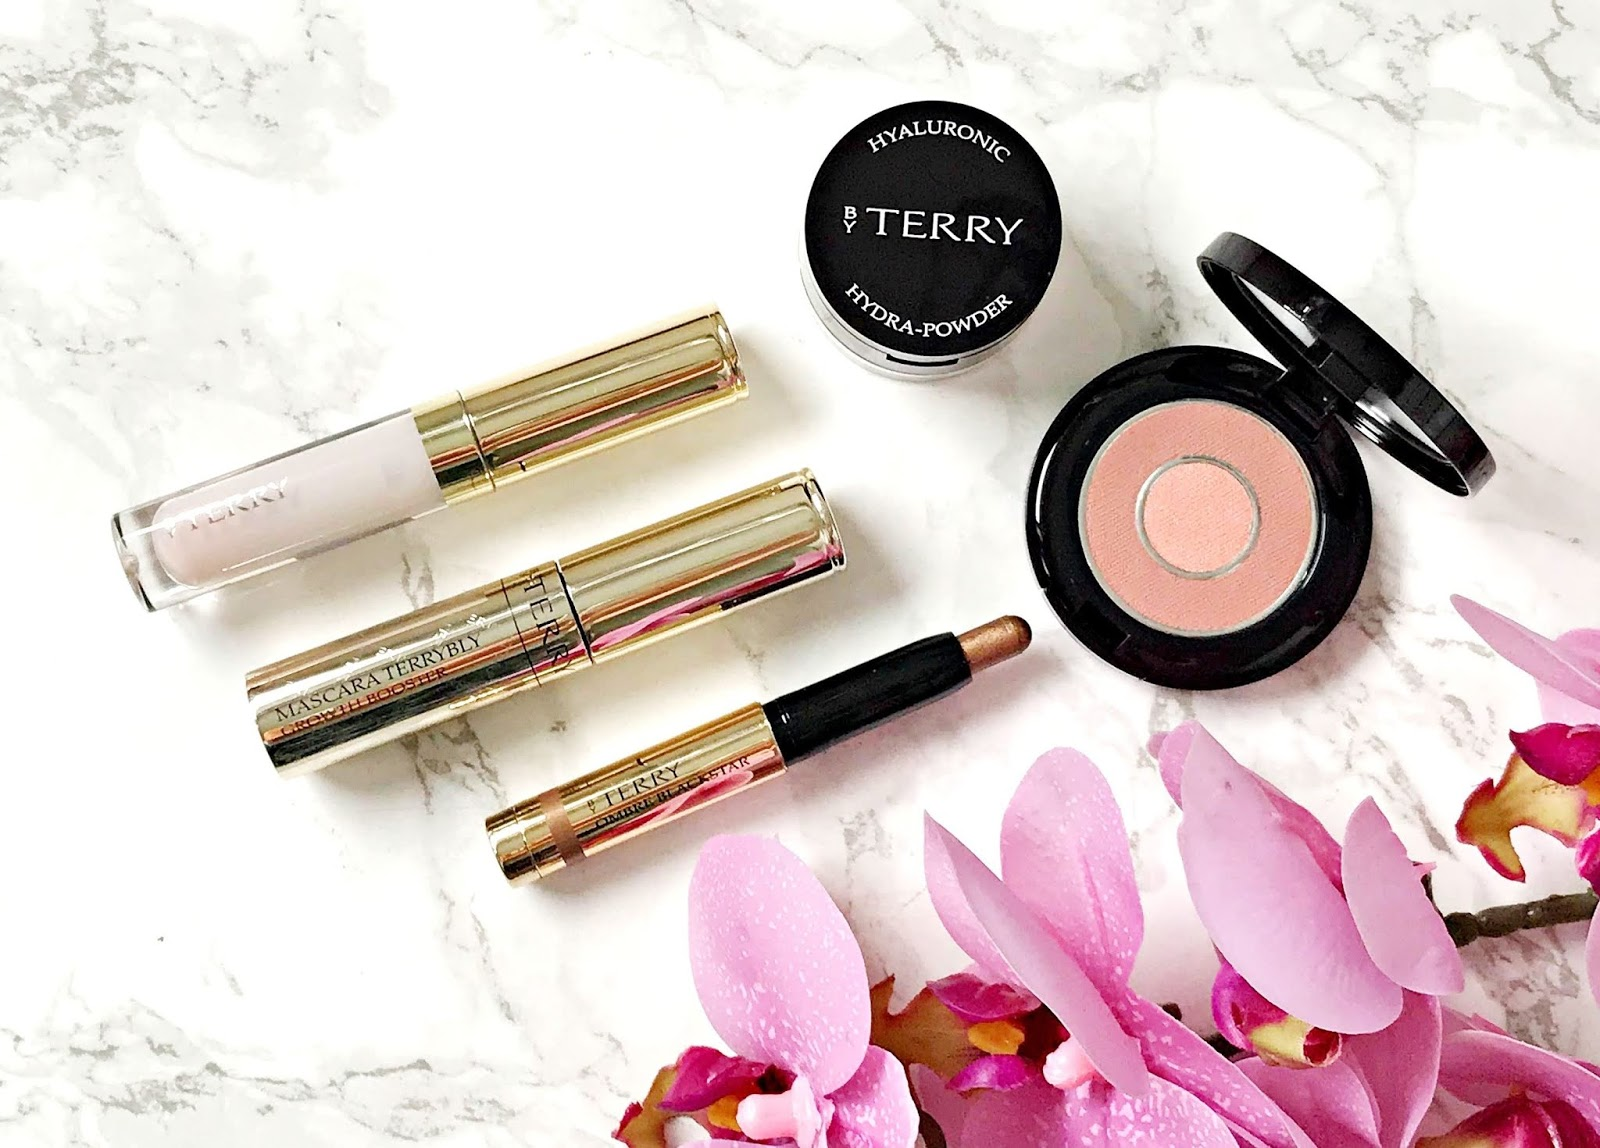 By Terry My Beauty Favourites Set - A World Duty Free Exclusive